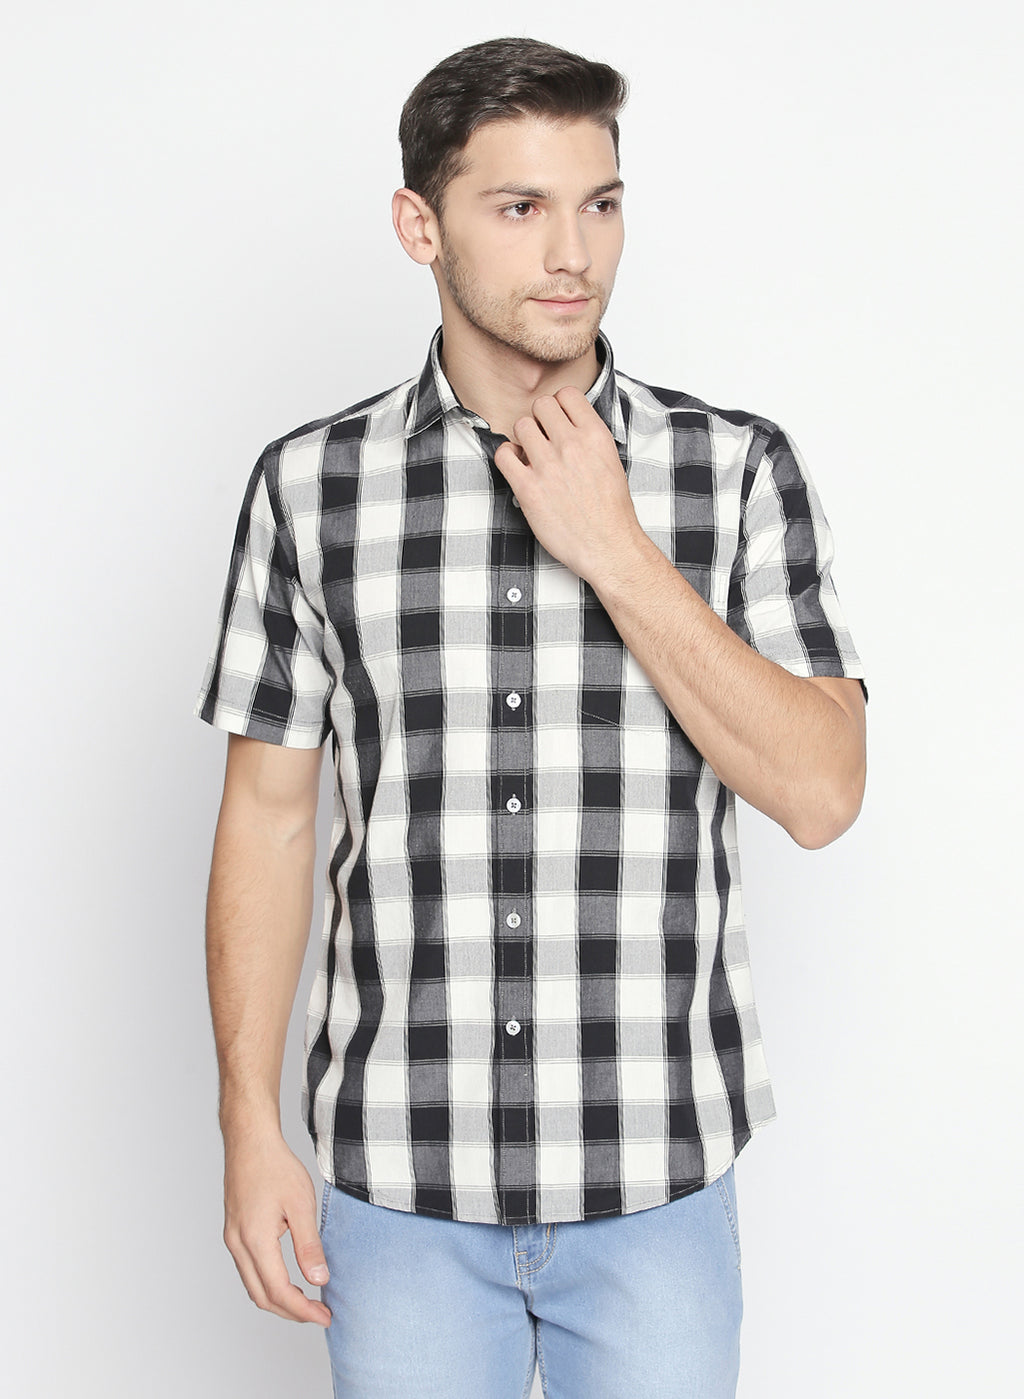 ZIDO Slim fit COTTON Checkered Shirt for Men's BTCH1424